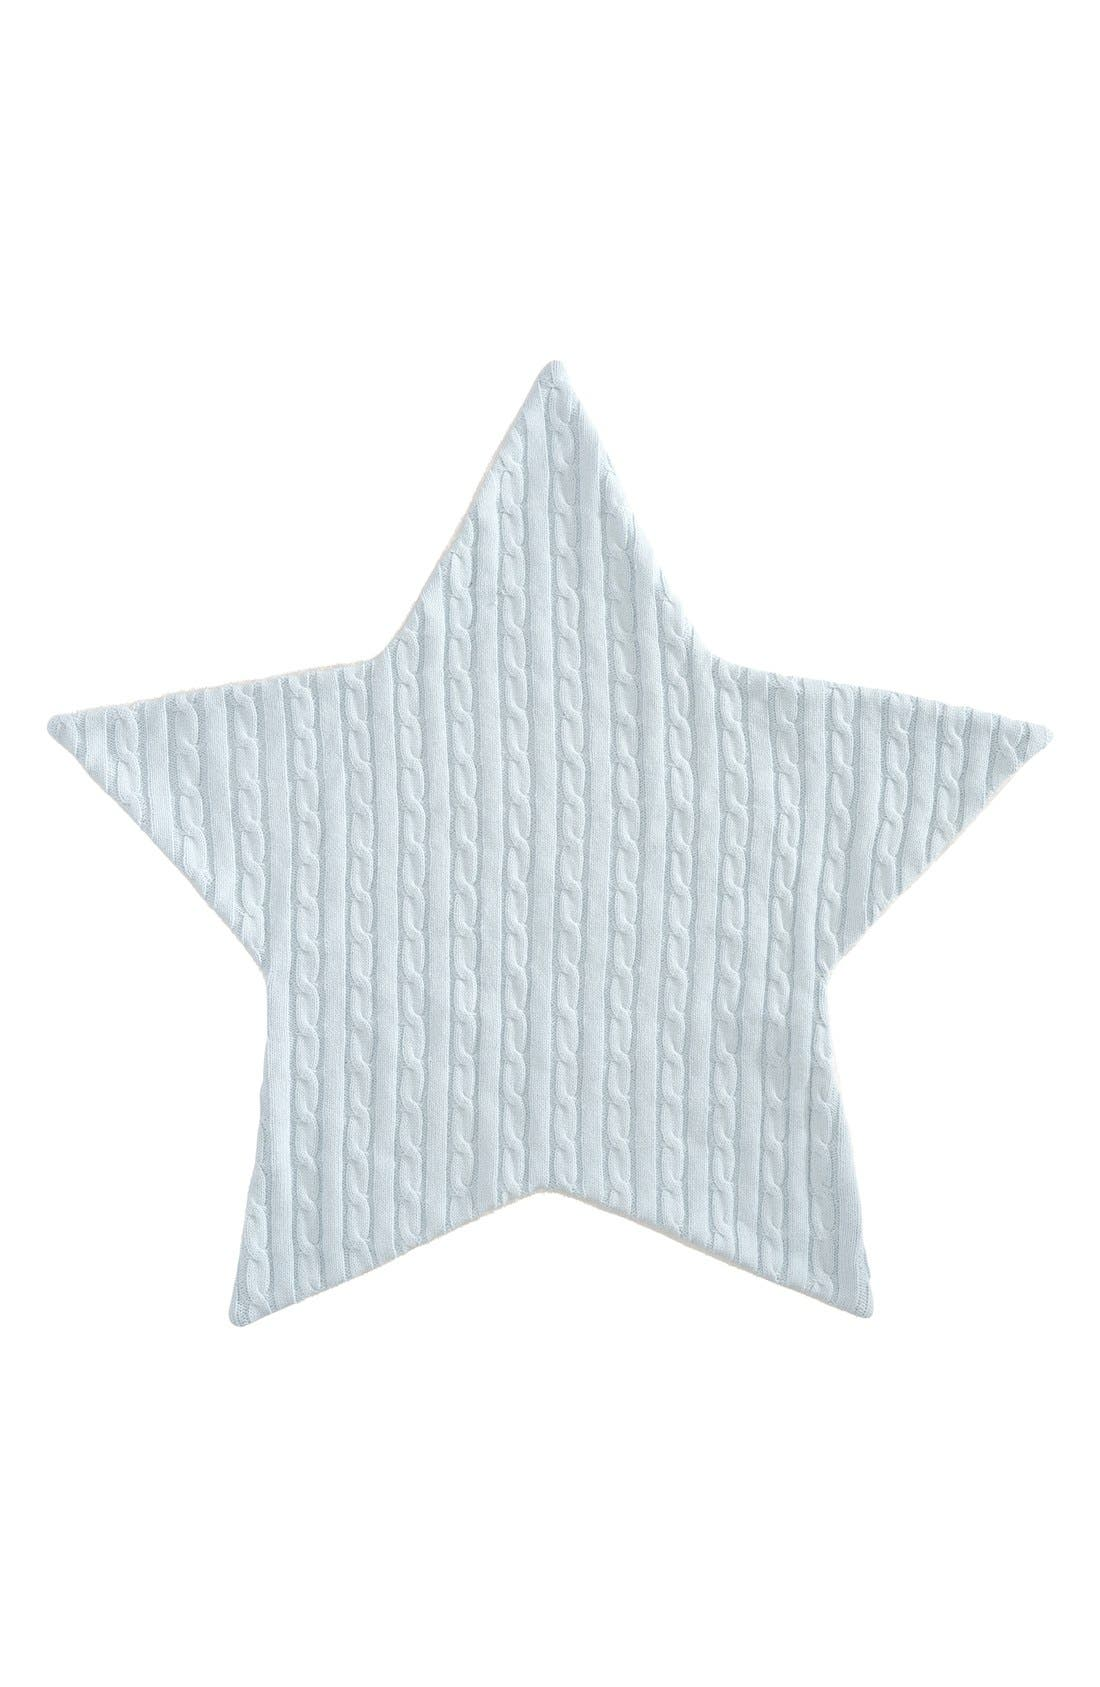 Main Image - Elegant Baby Cable Knit Star Blanket